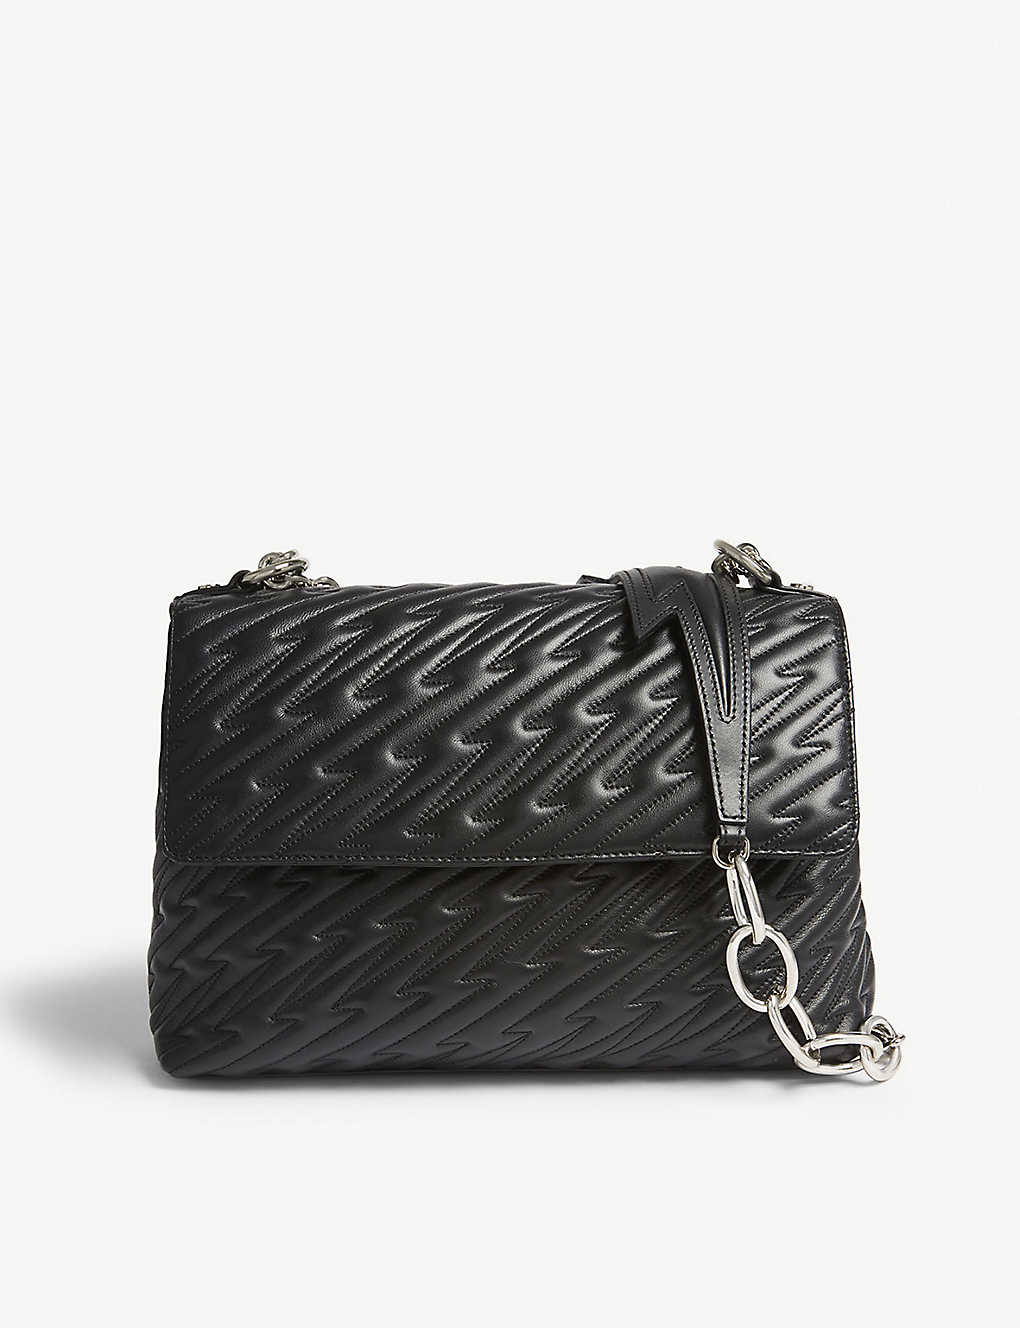 69a367b7d9 VIVIENNE WESTWOOD - Coventry large quilted leather shoulder bag ...